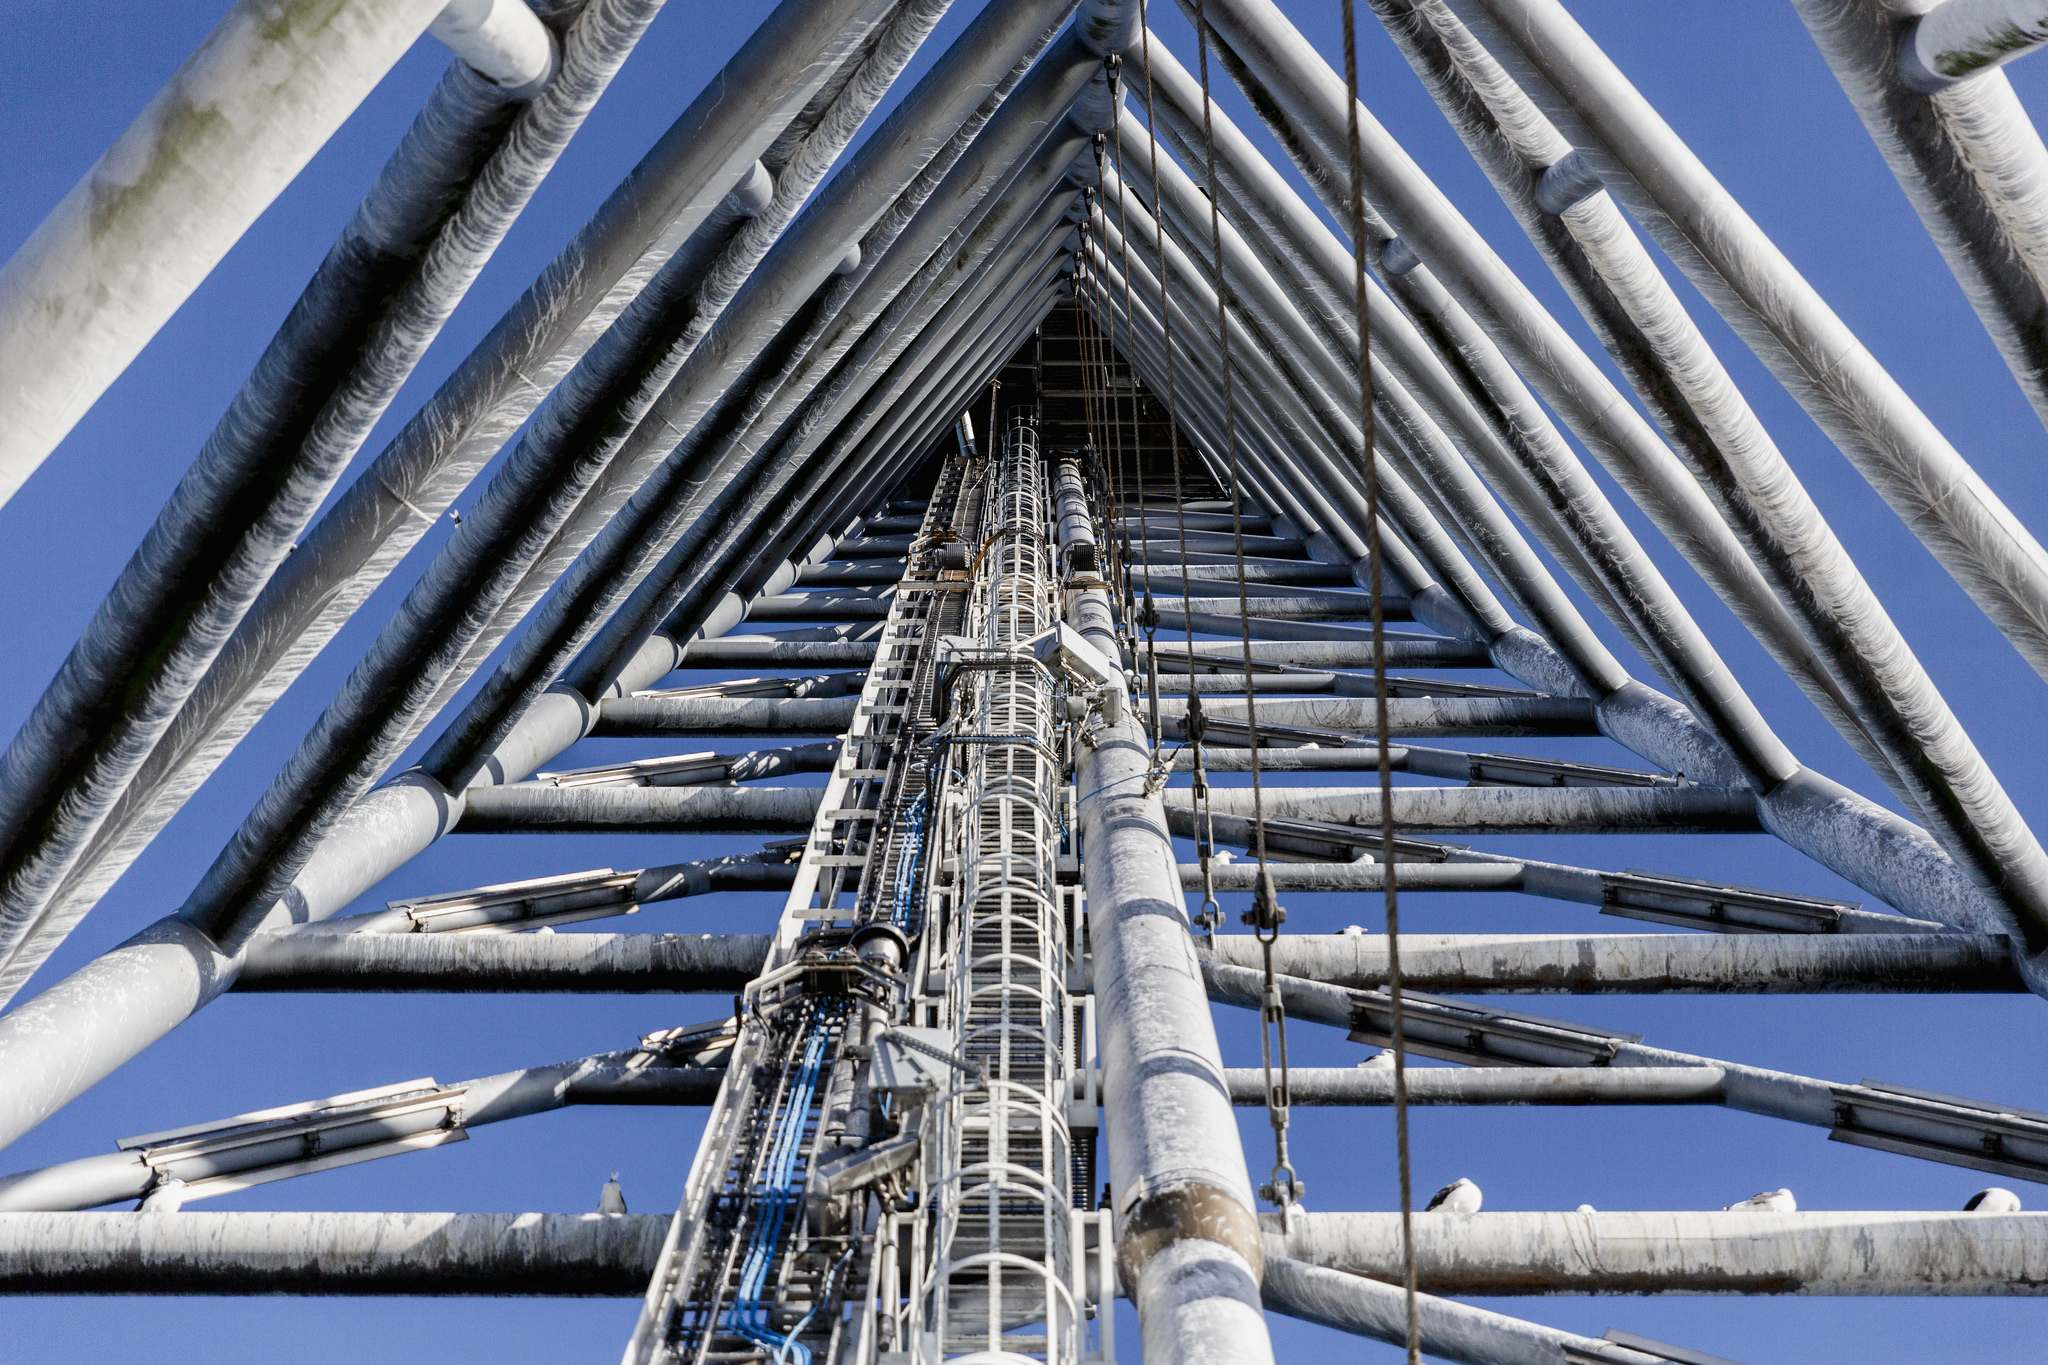 troll a11 Megastructure   Troll A Gas Platform, Norway